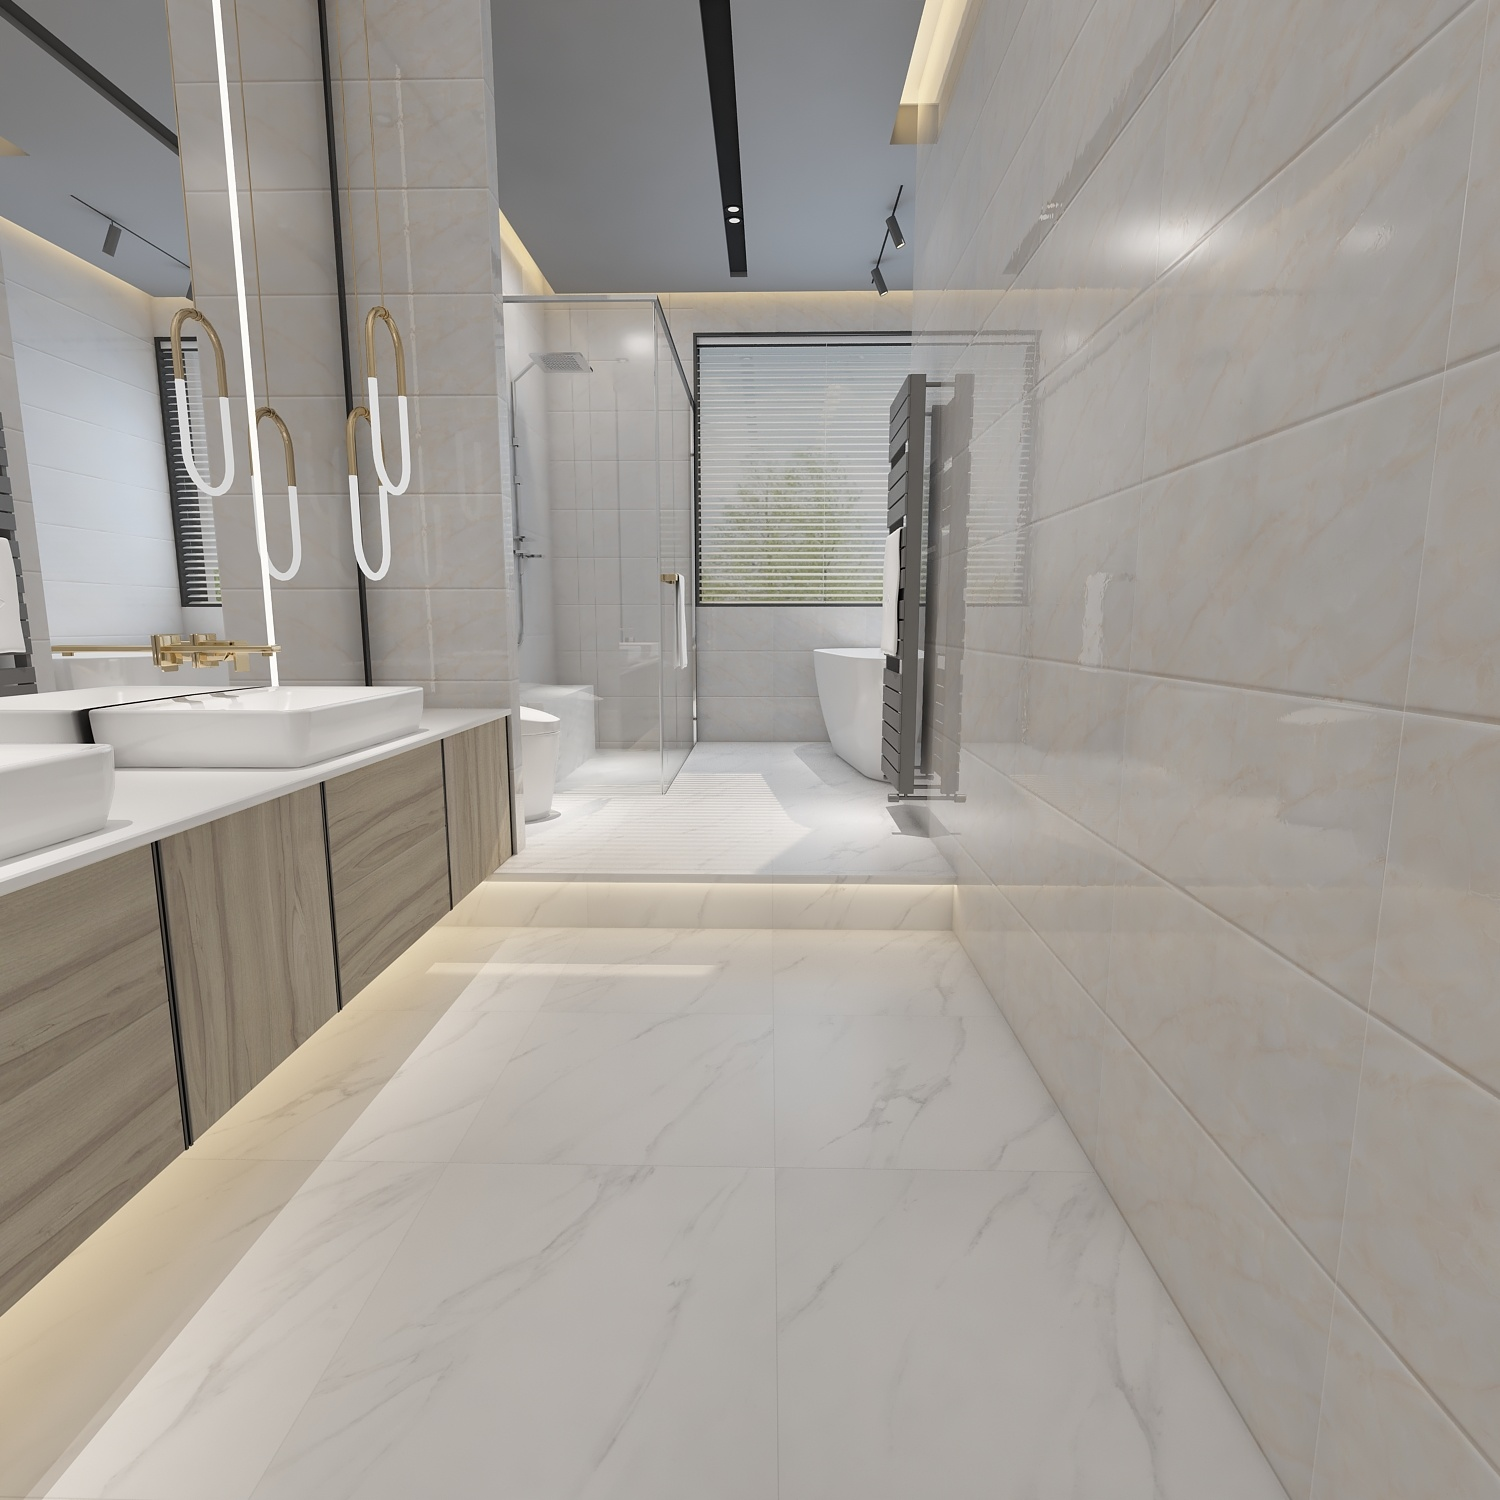 Picture of: 300x600mm Hotel Villa Apartment Decorative Bathroom Wall Tile Designs China Porcelain Tile Sri Lanka Tile Prices Made In China Com